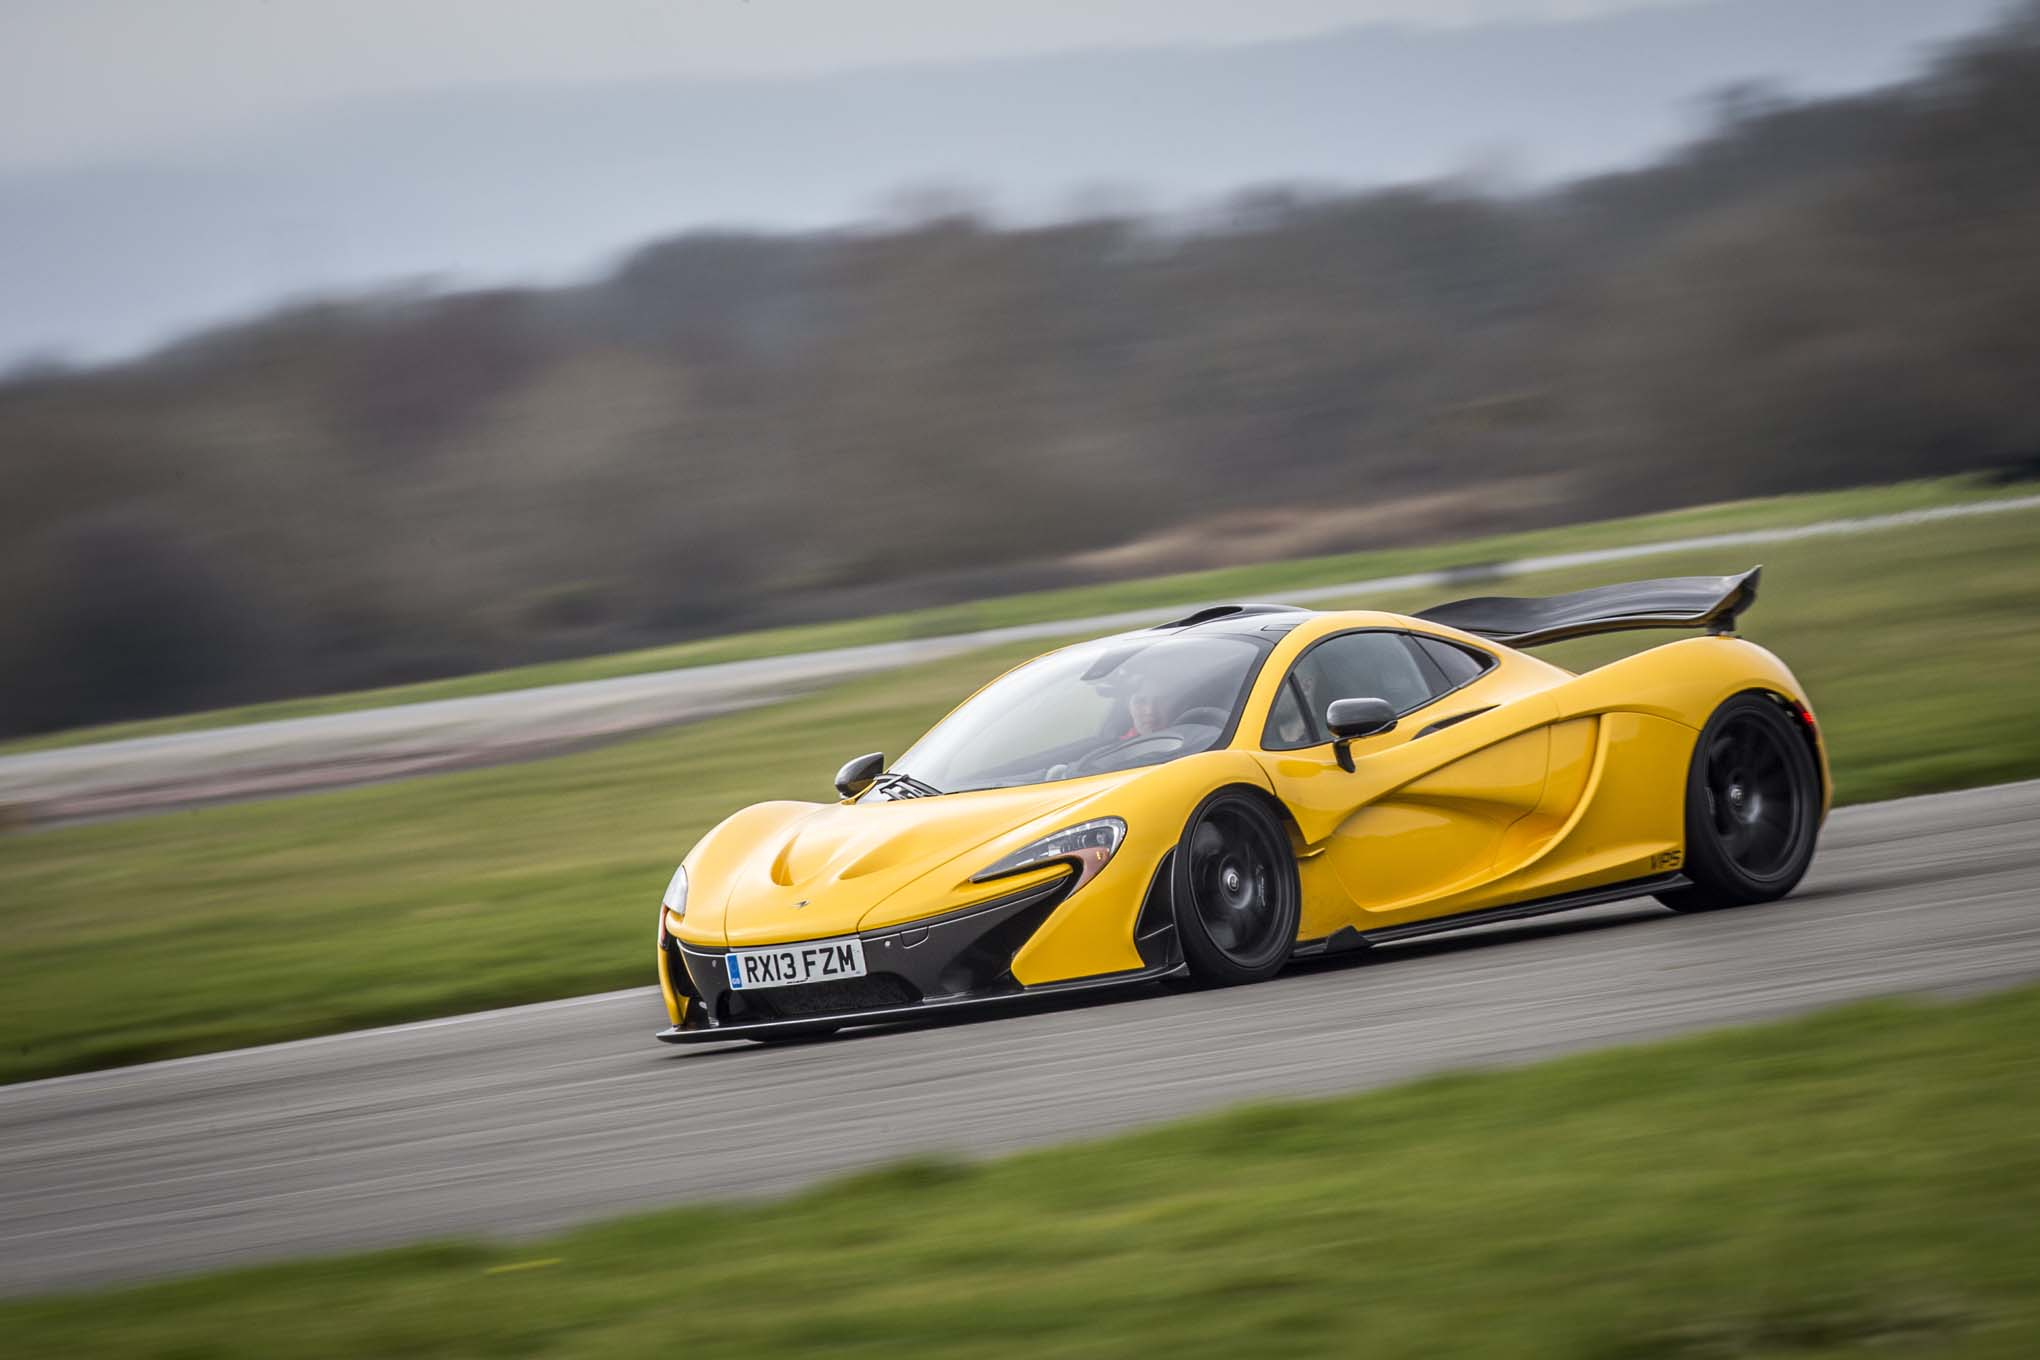 9 Gee-Whiz Facts About The McLaren P1 - Motor Trend